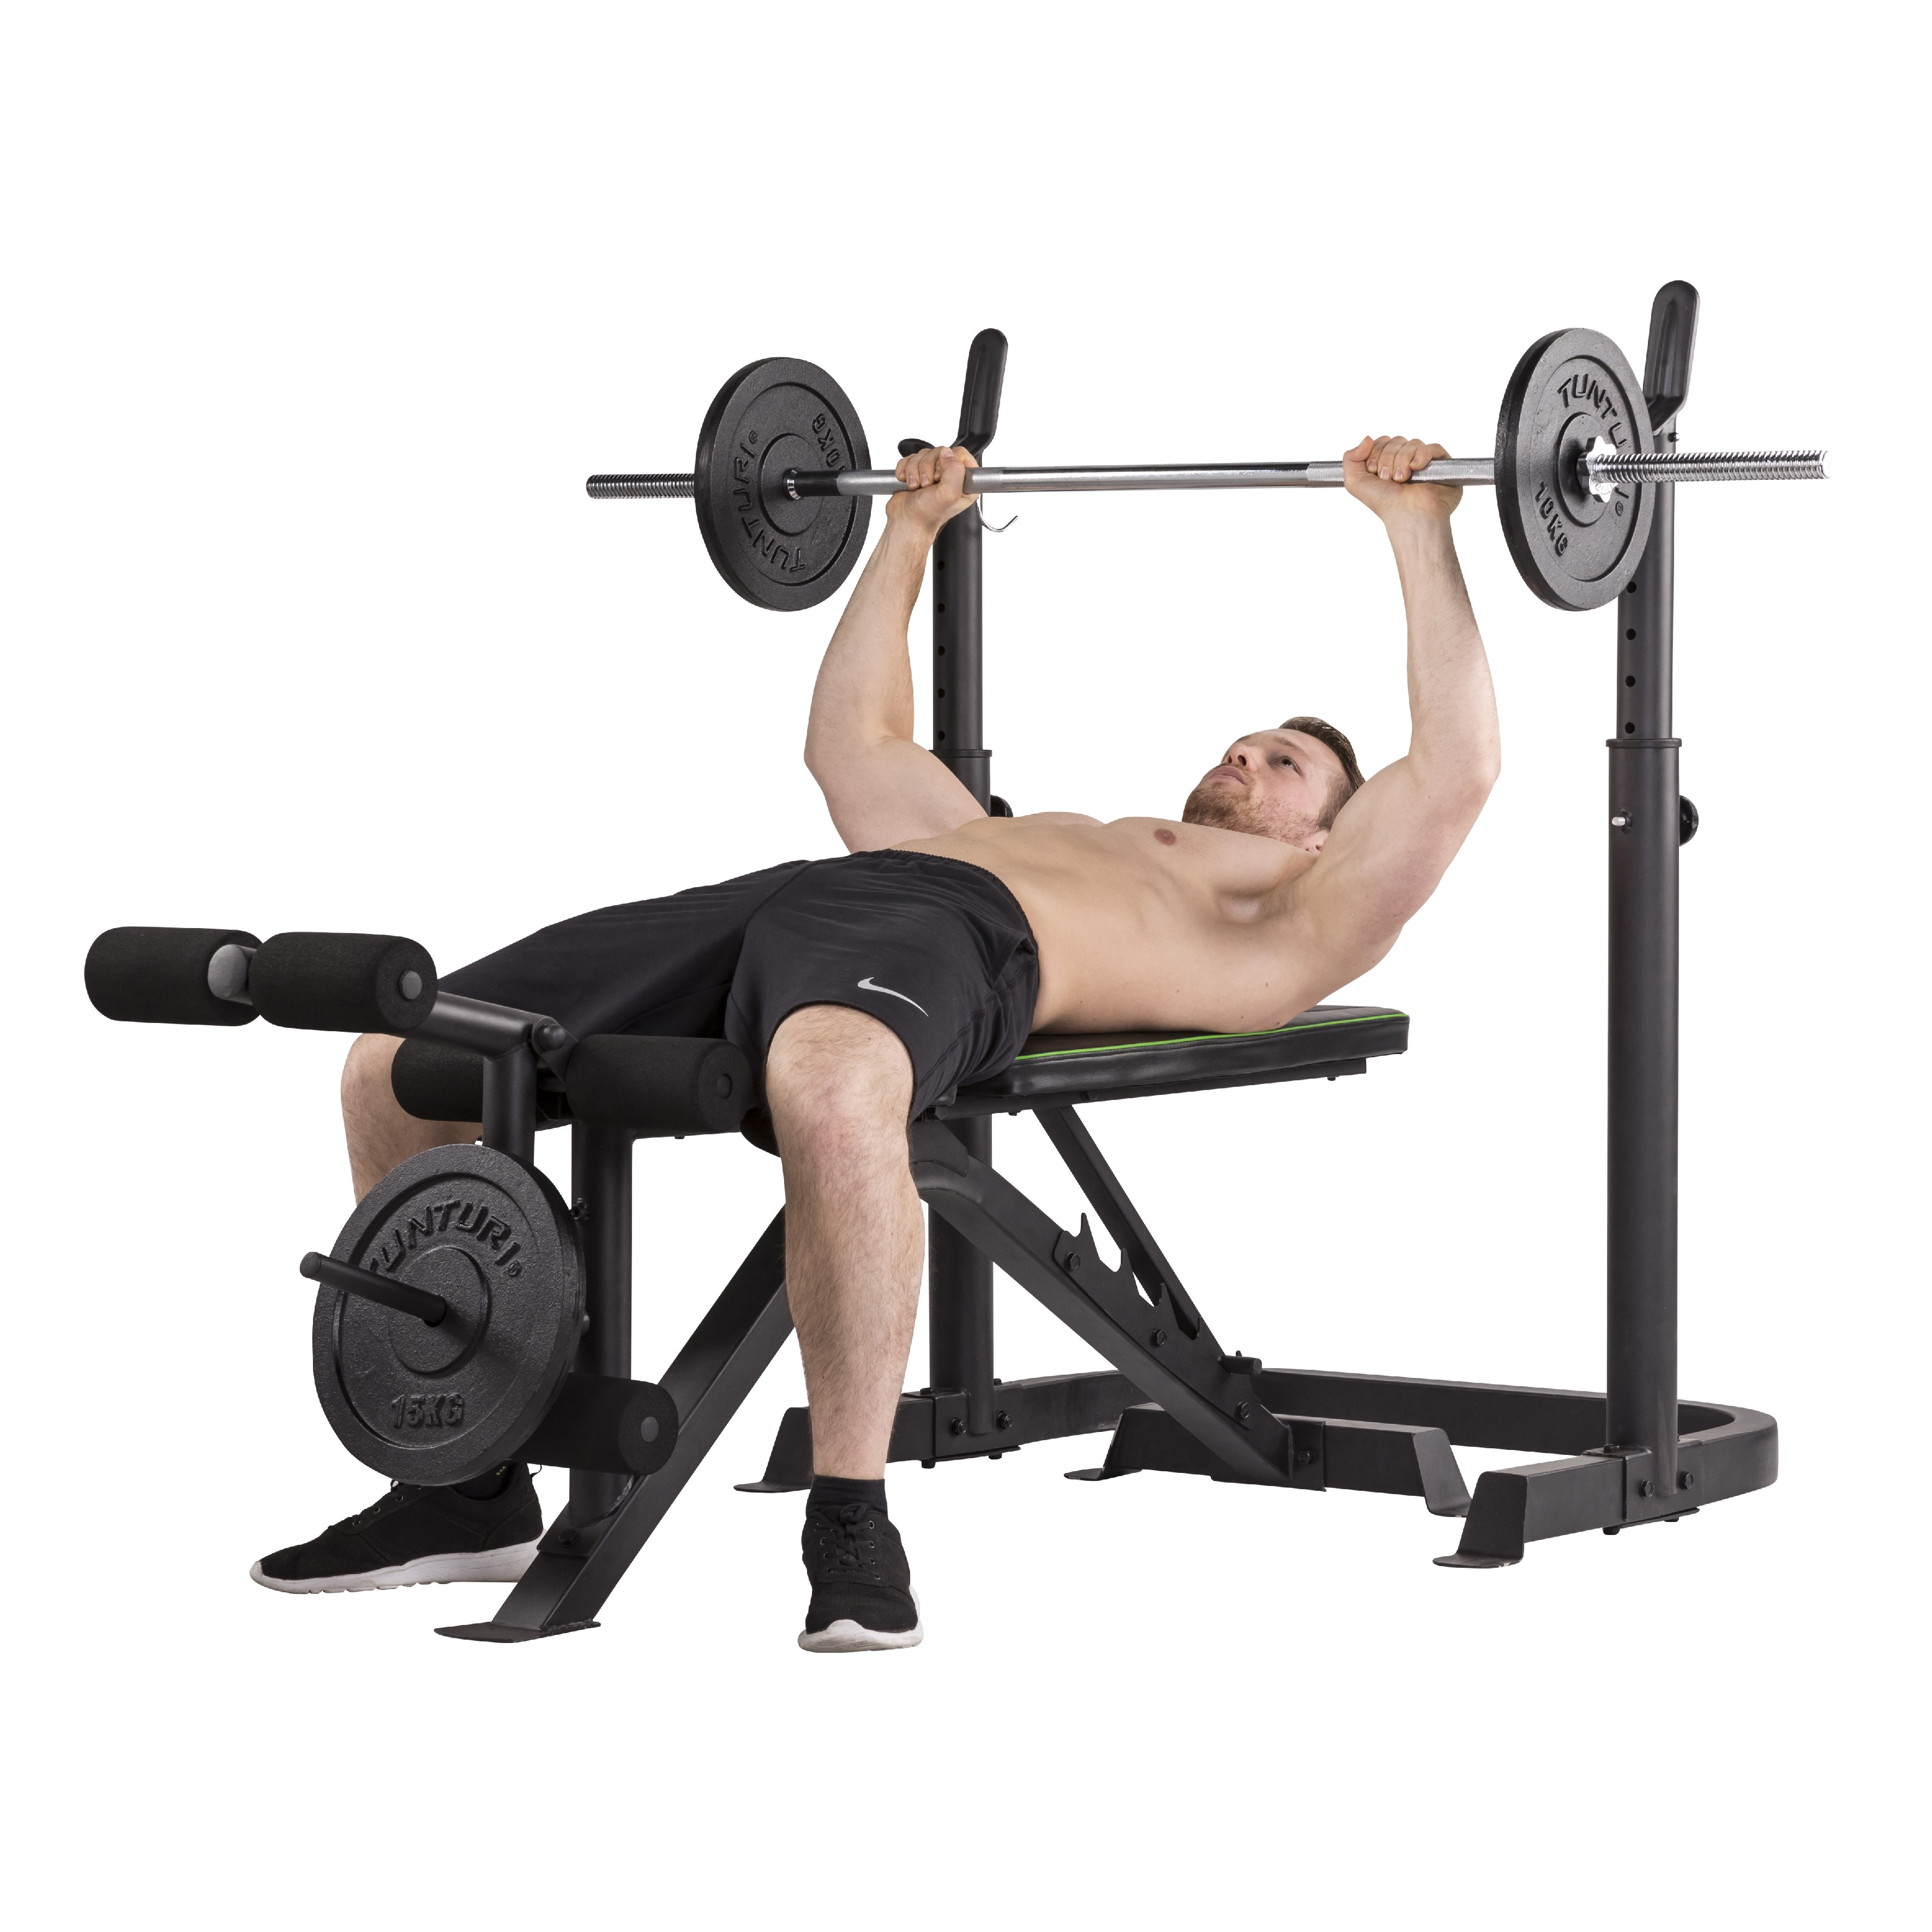 bar press barbell weight lifting equipment bench power product york